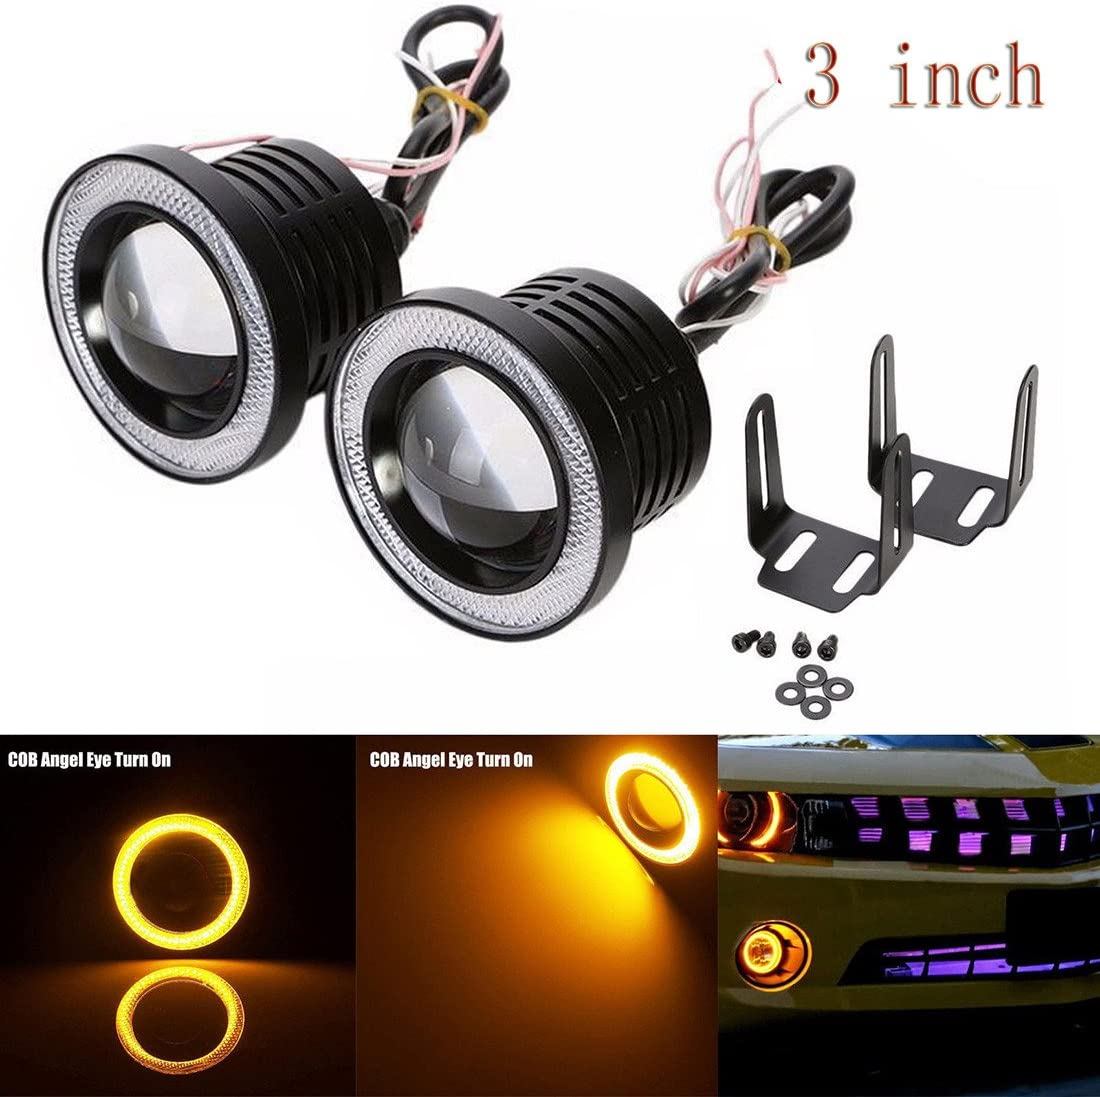 Likethy Car COB LED Fog Light Projector Yellow Halo Ring Angel Eye Driving DRL Bulb 30W 3 inch 76 mm